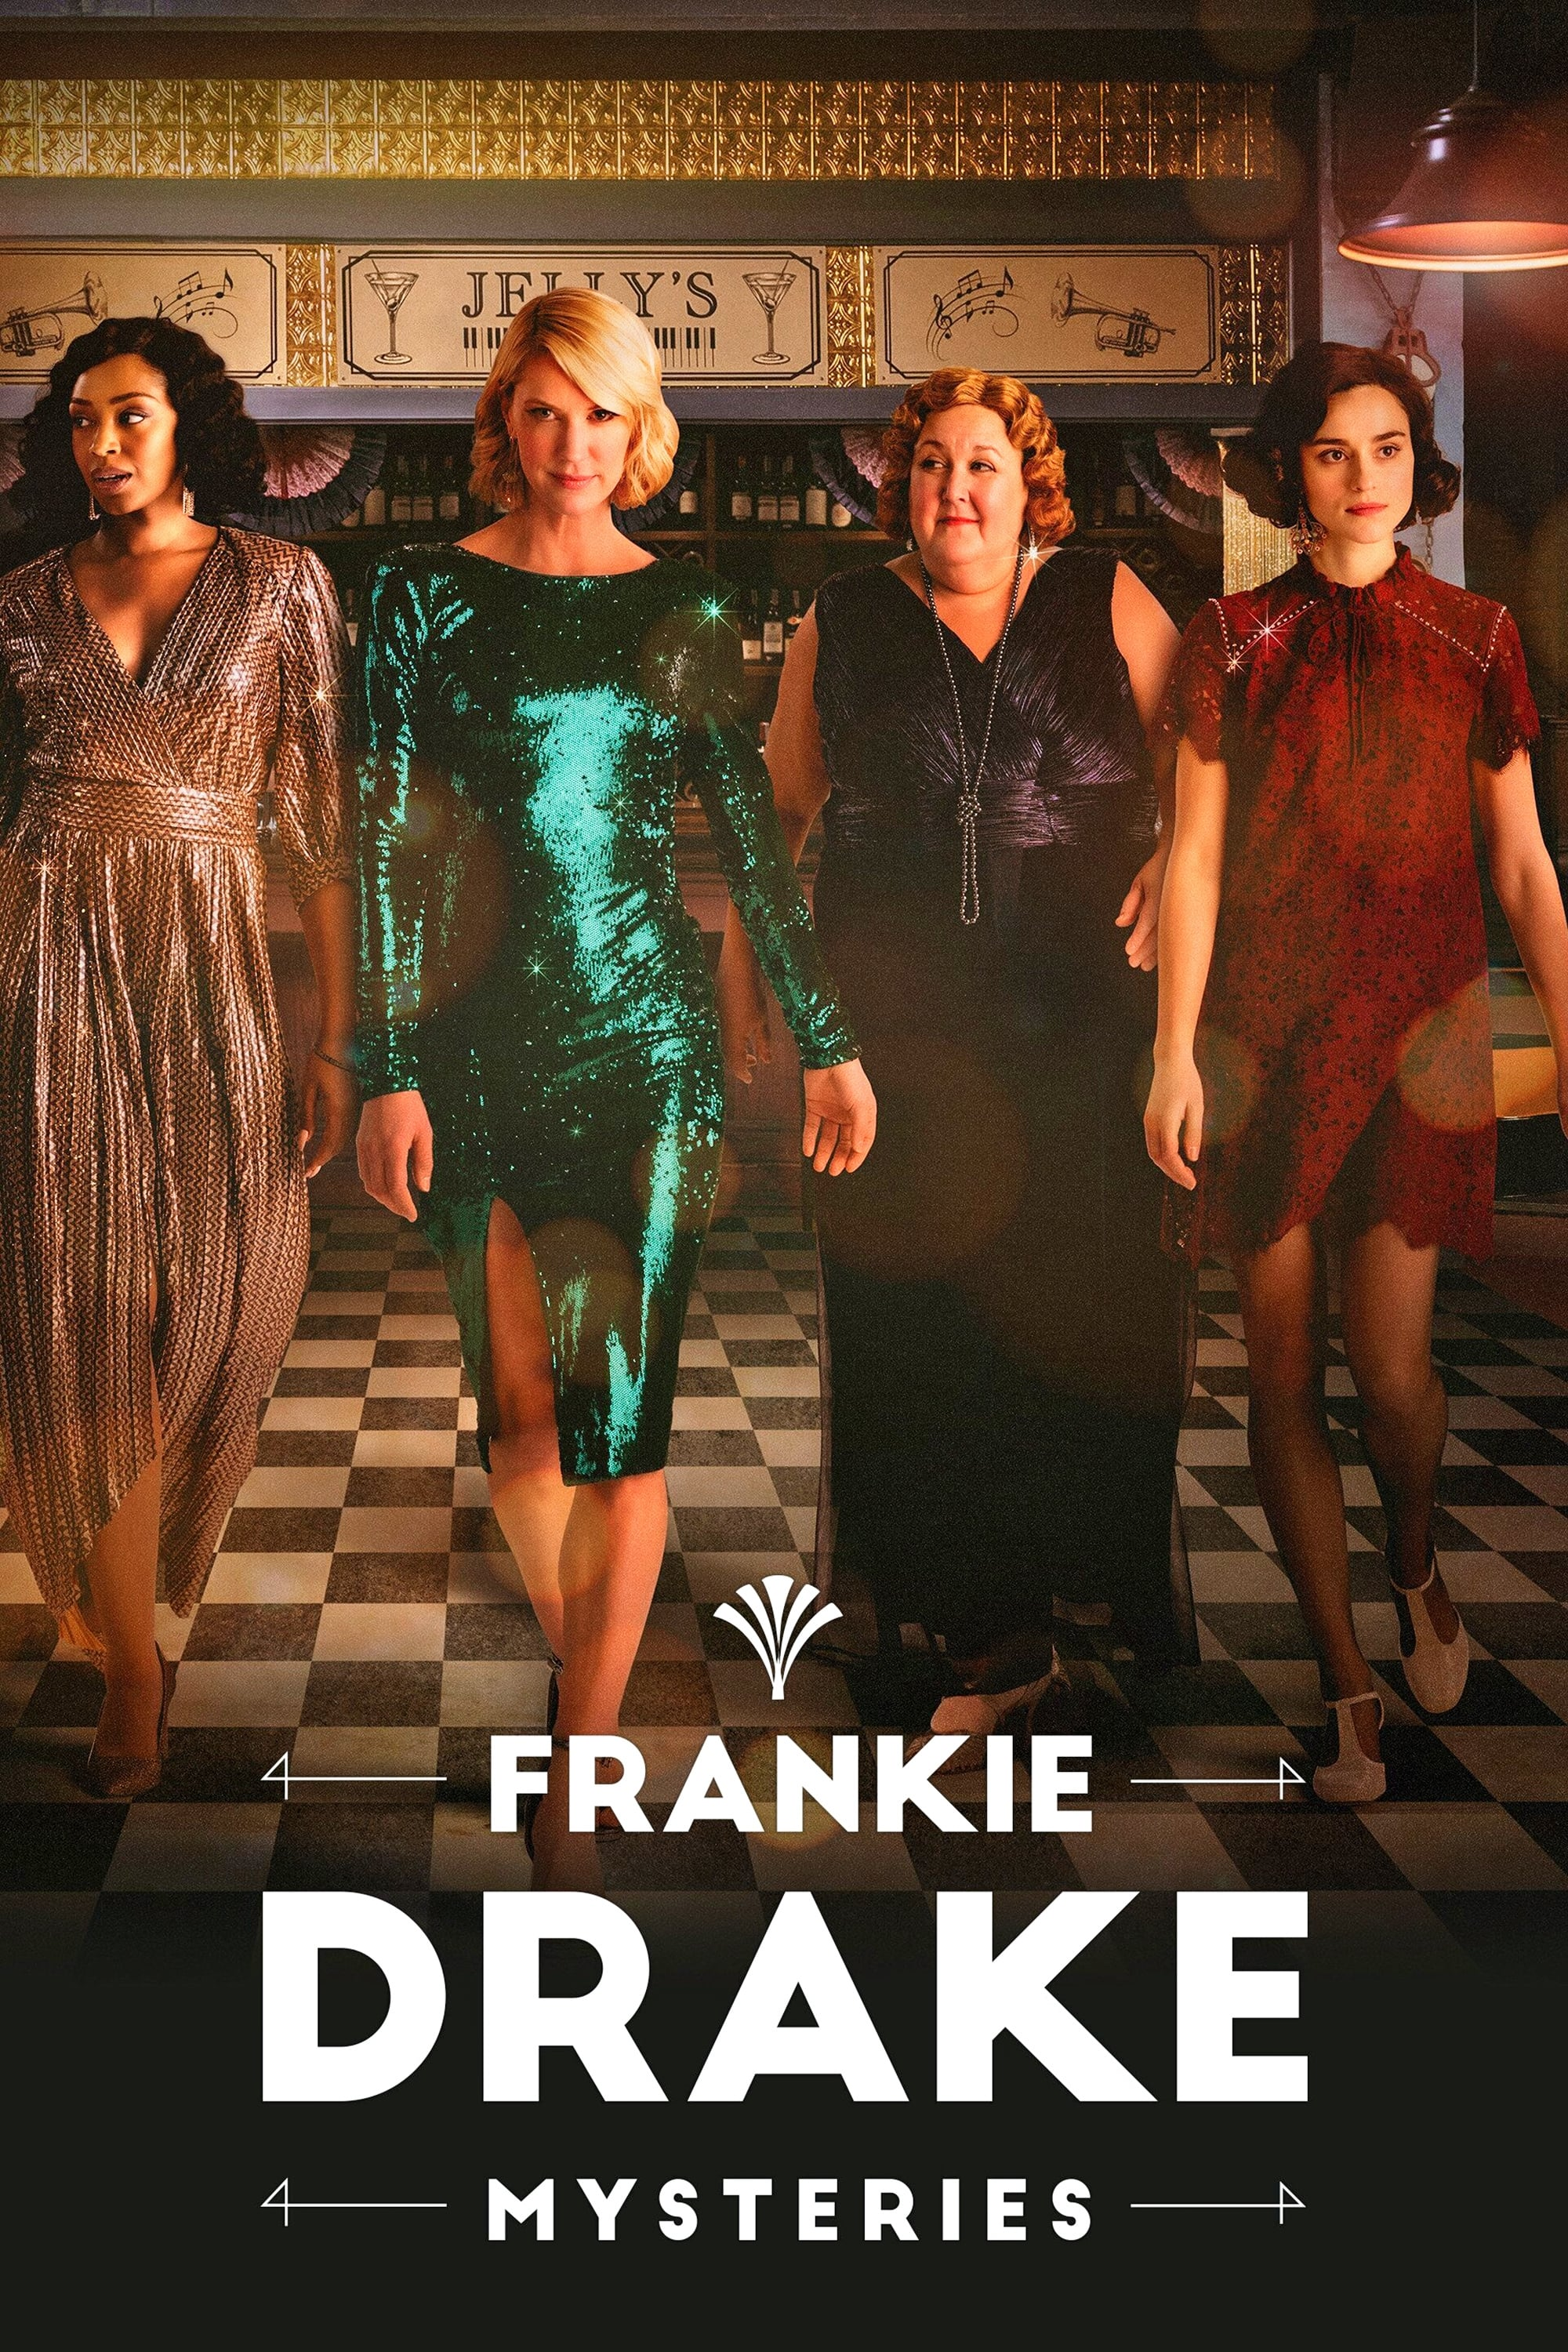 Frankie Drake Mysteries TV Shows About Private Detective